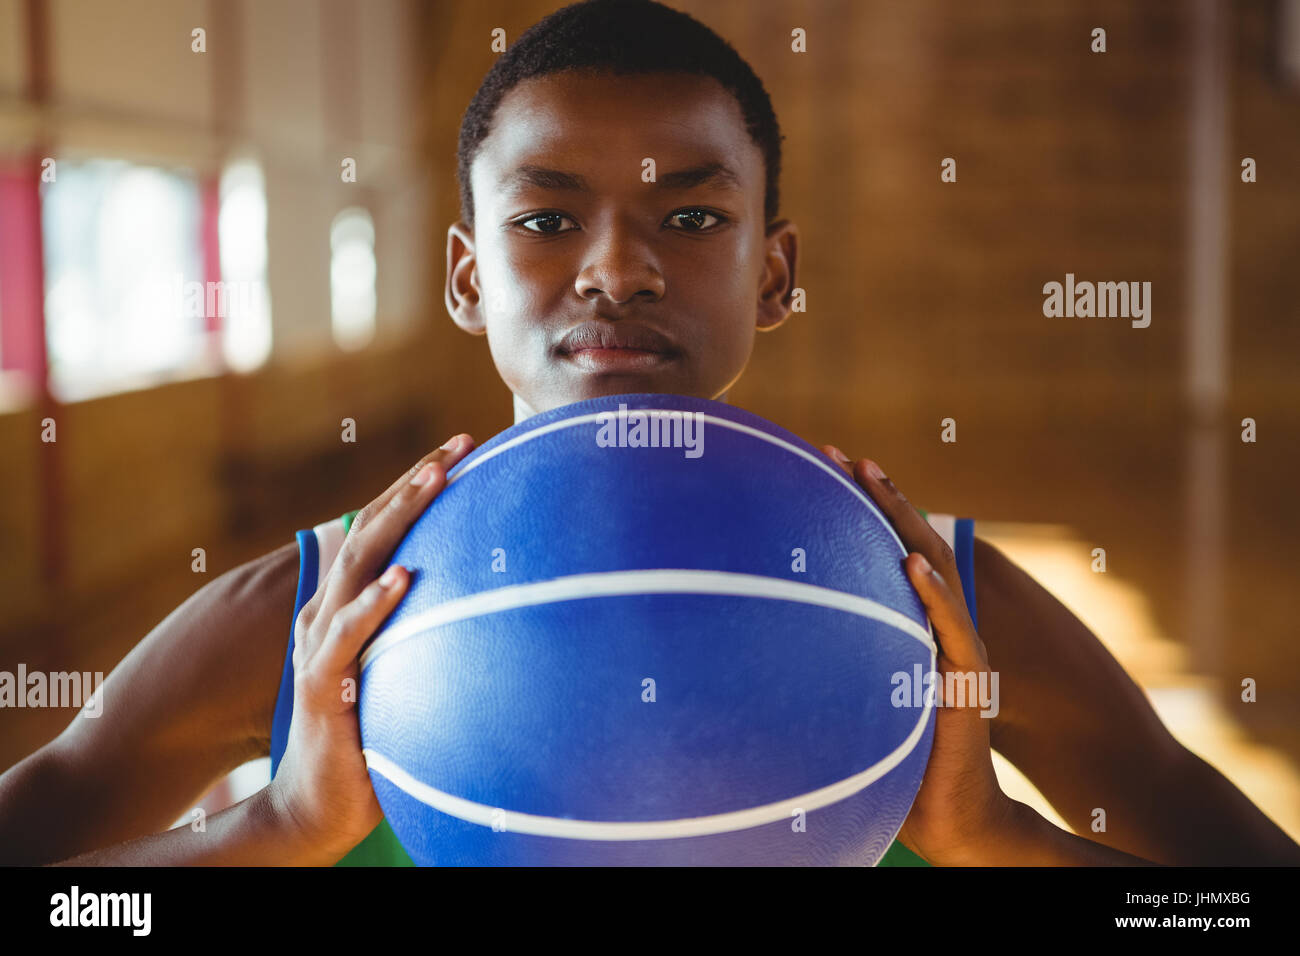 Close up portrait of serious man with basketball standing in court Stock Photo